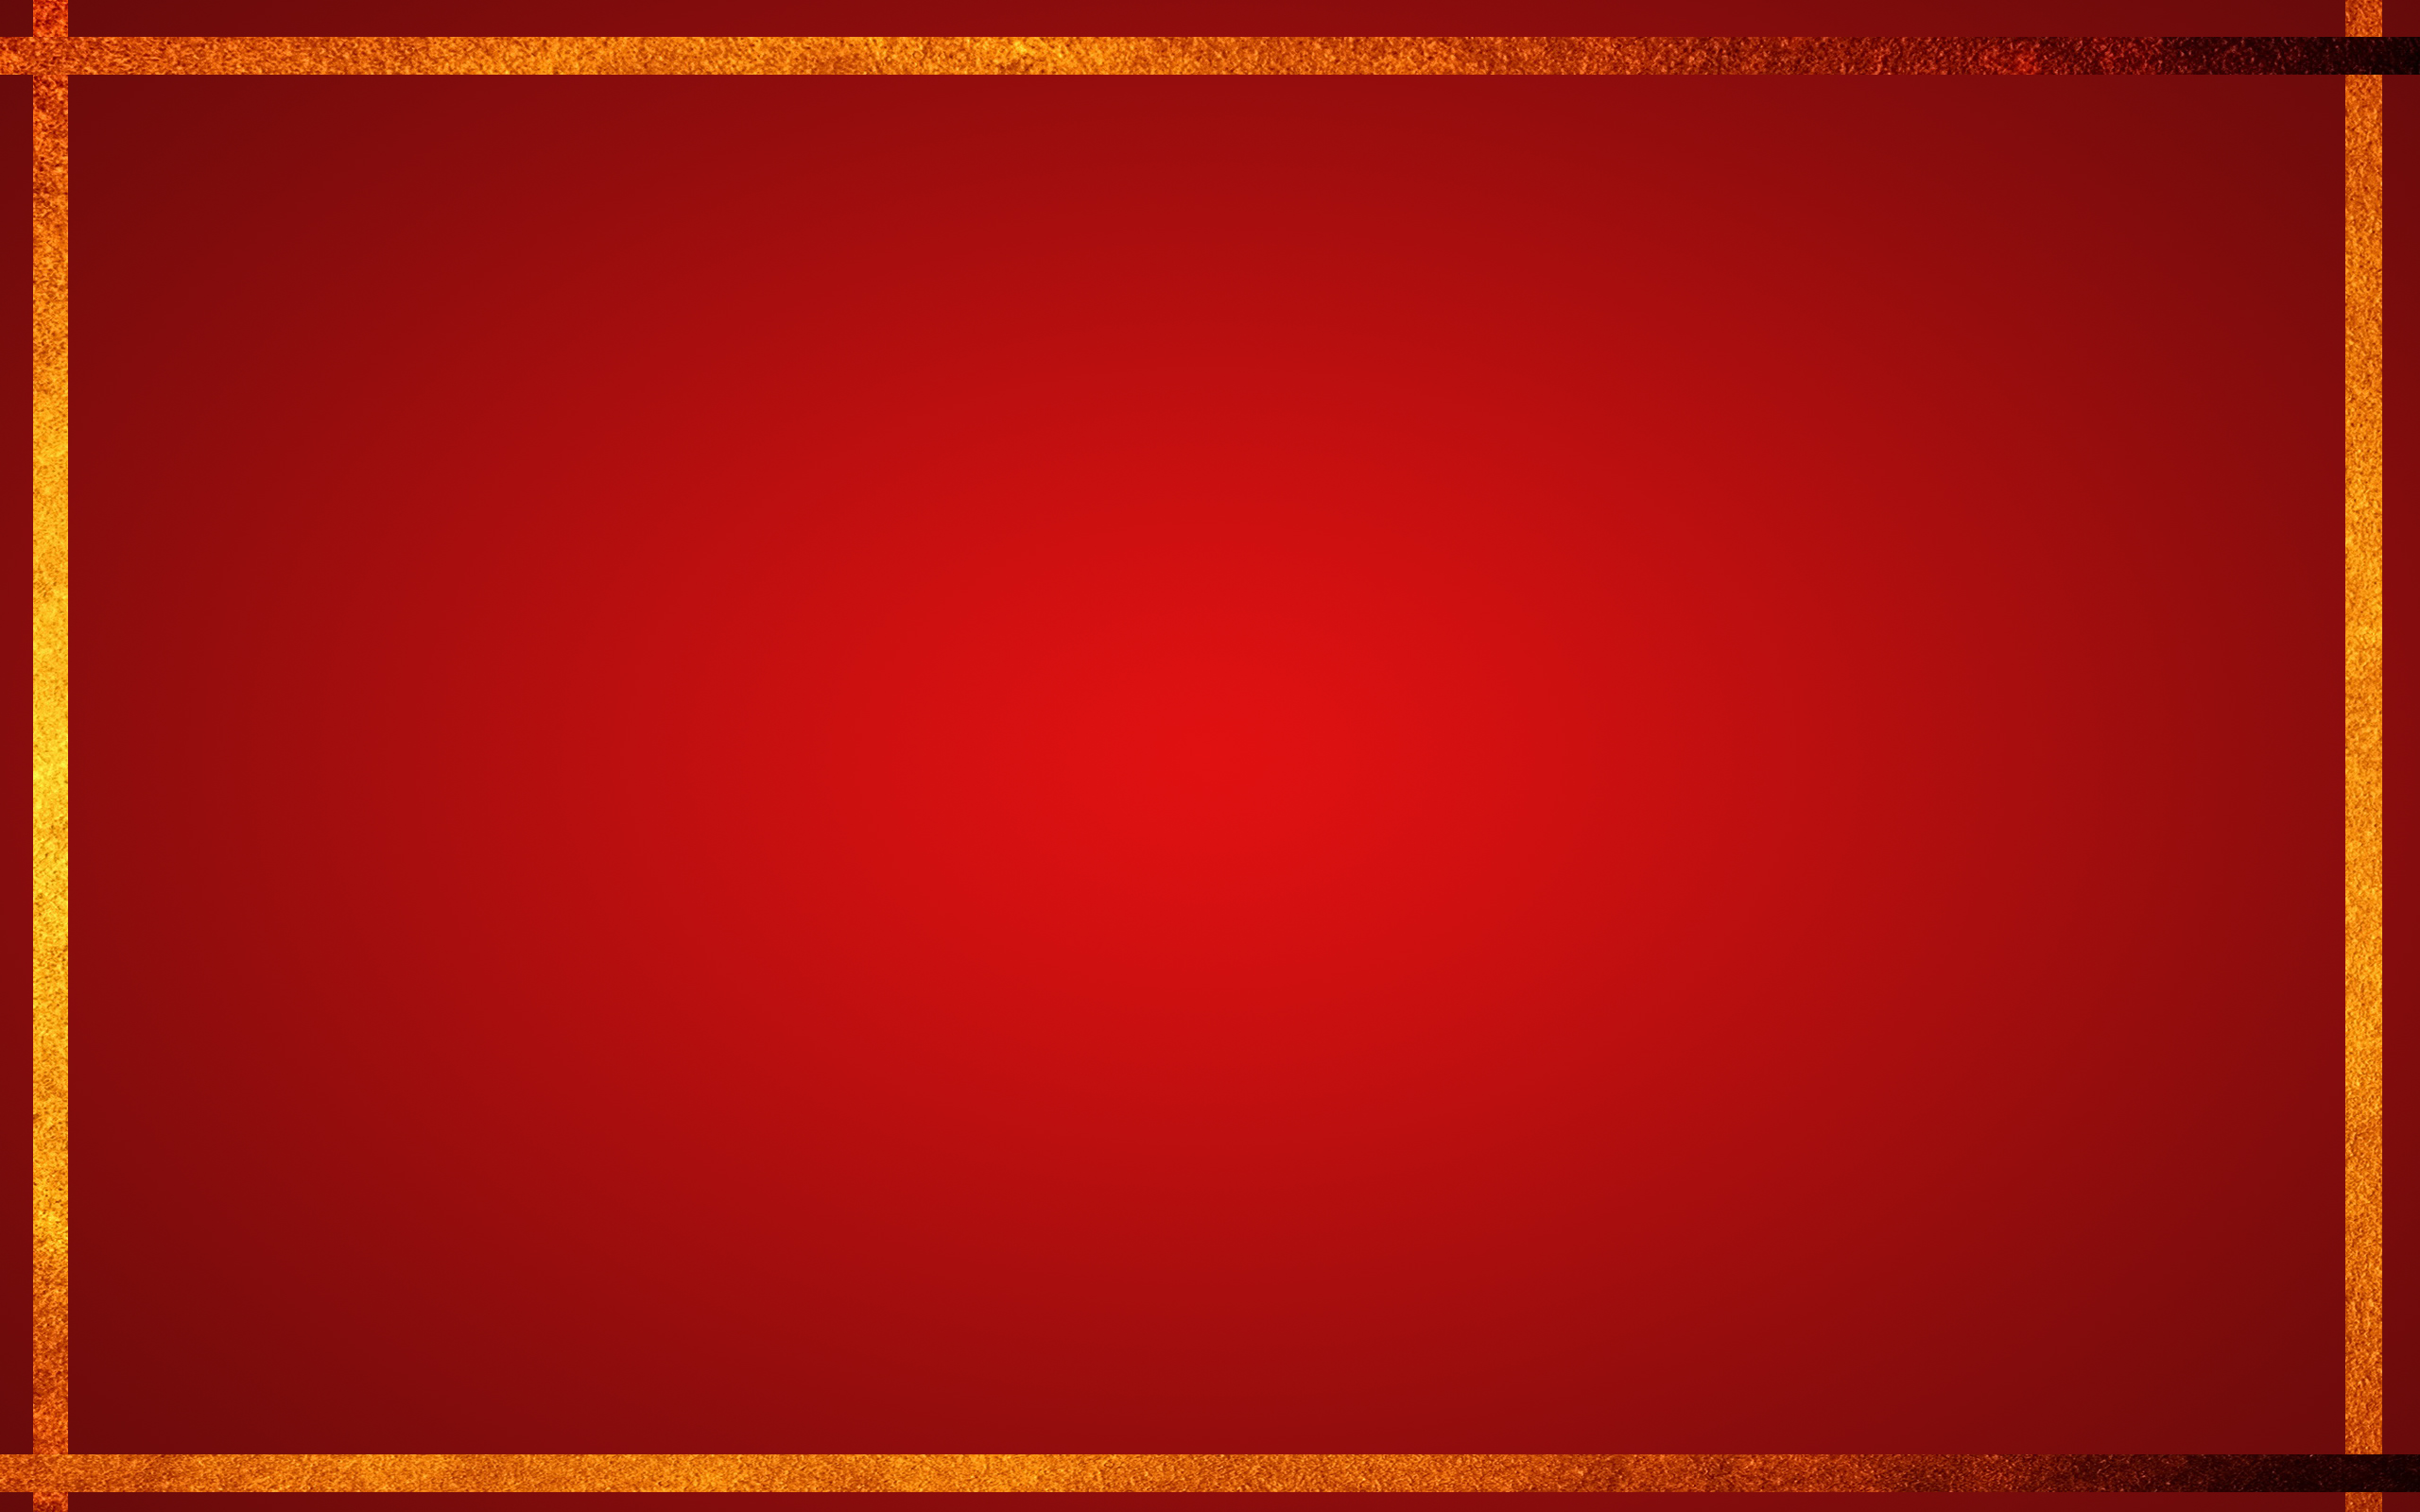 Gold And Red Backgrounds: Red Chinese Wallpaper Designs 16 Of 20 With Solid Red And